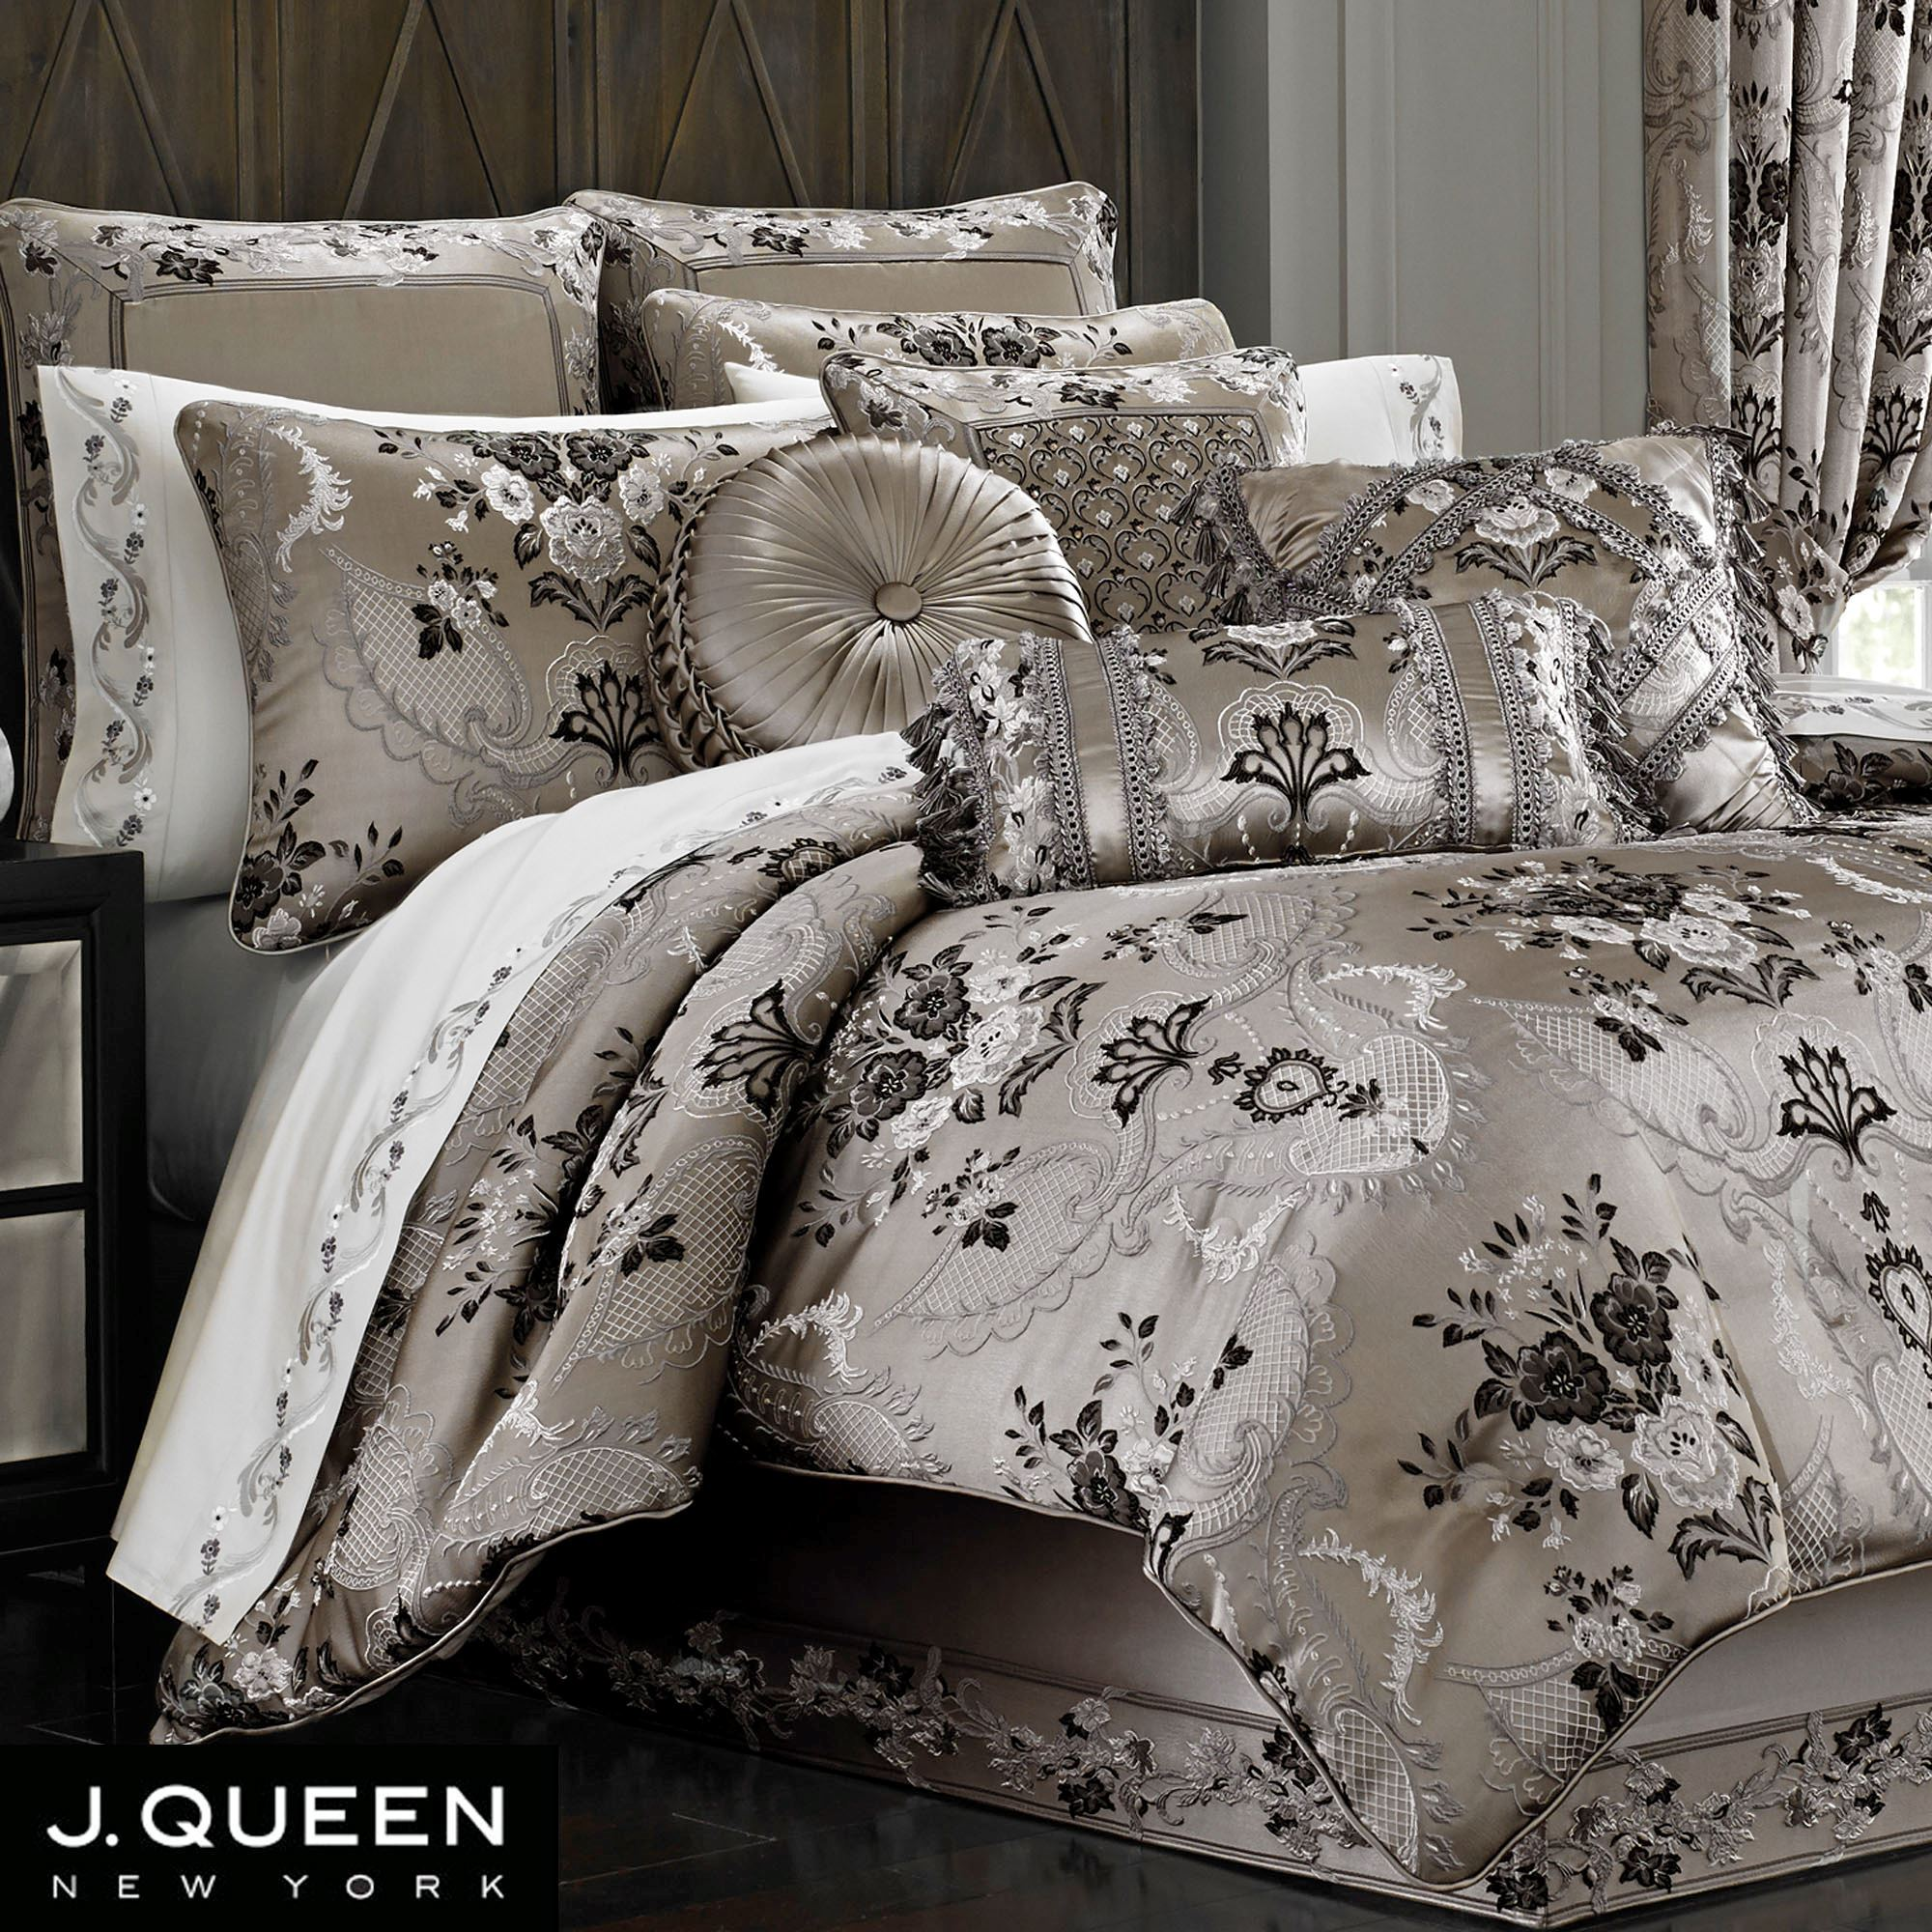 and hotel bed prime blackwhitegrey queen tiles bag sets comforter mainstays pic in incredible king files size pc design astonishing of top style a set bedding trend